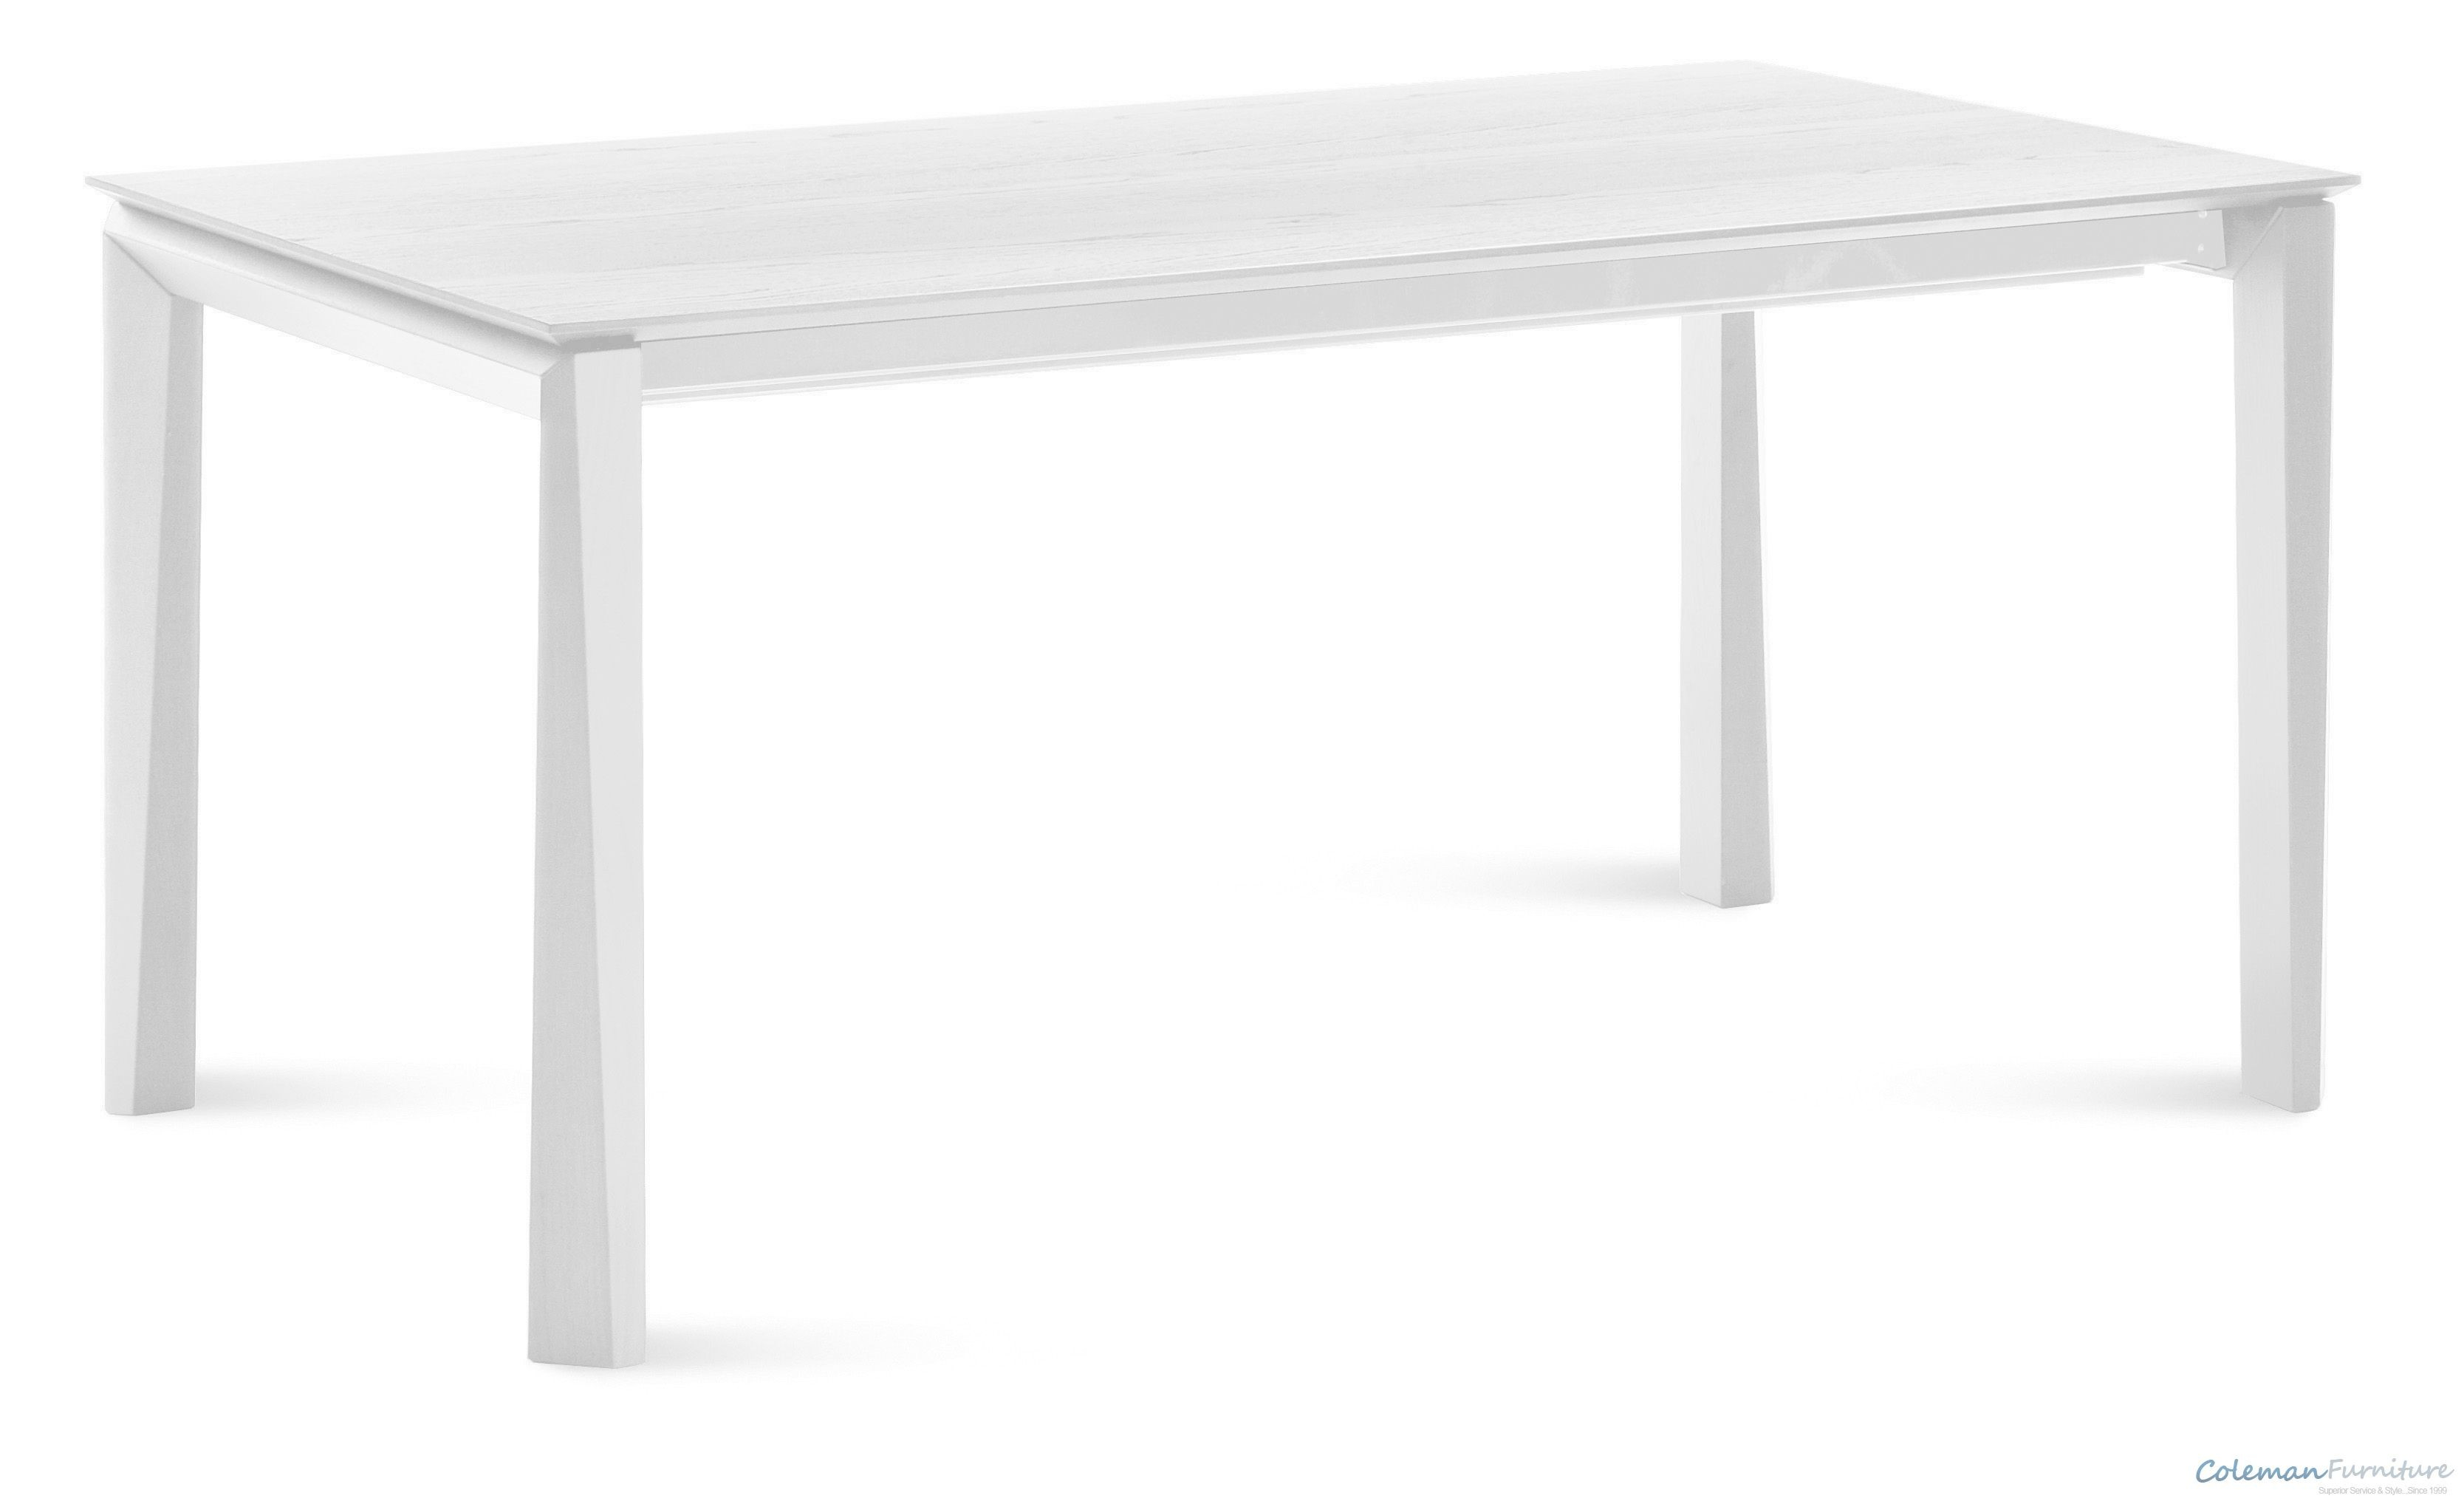 Universe white 111 inch rectangular table from domitalia for Table 6 in as 3725